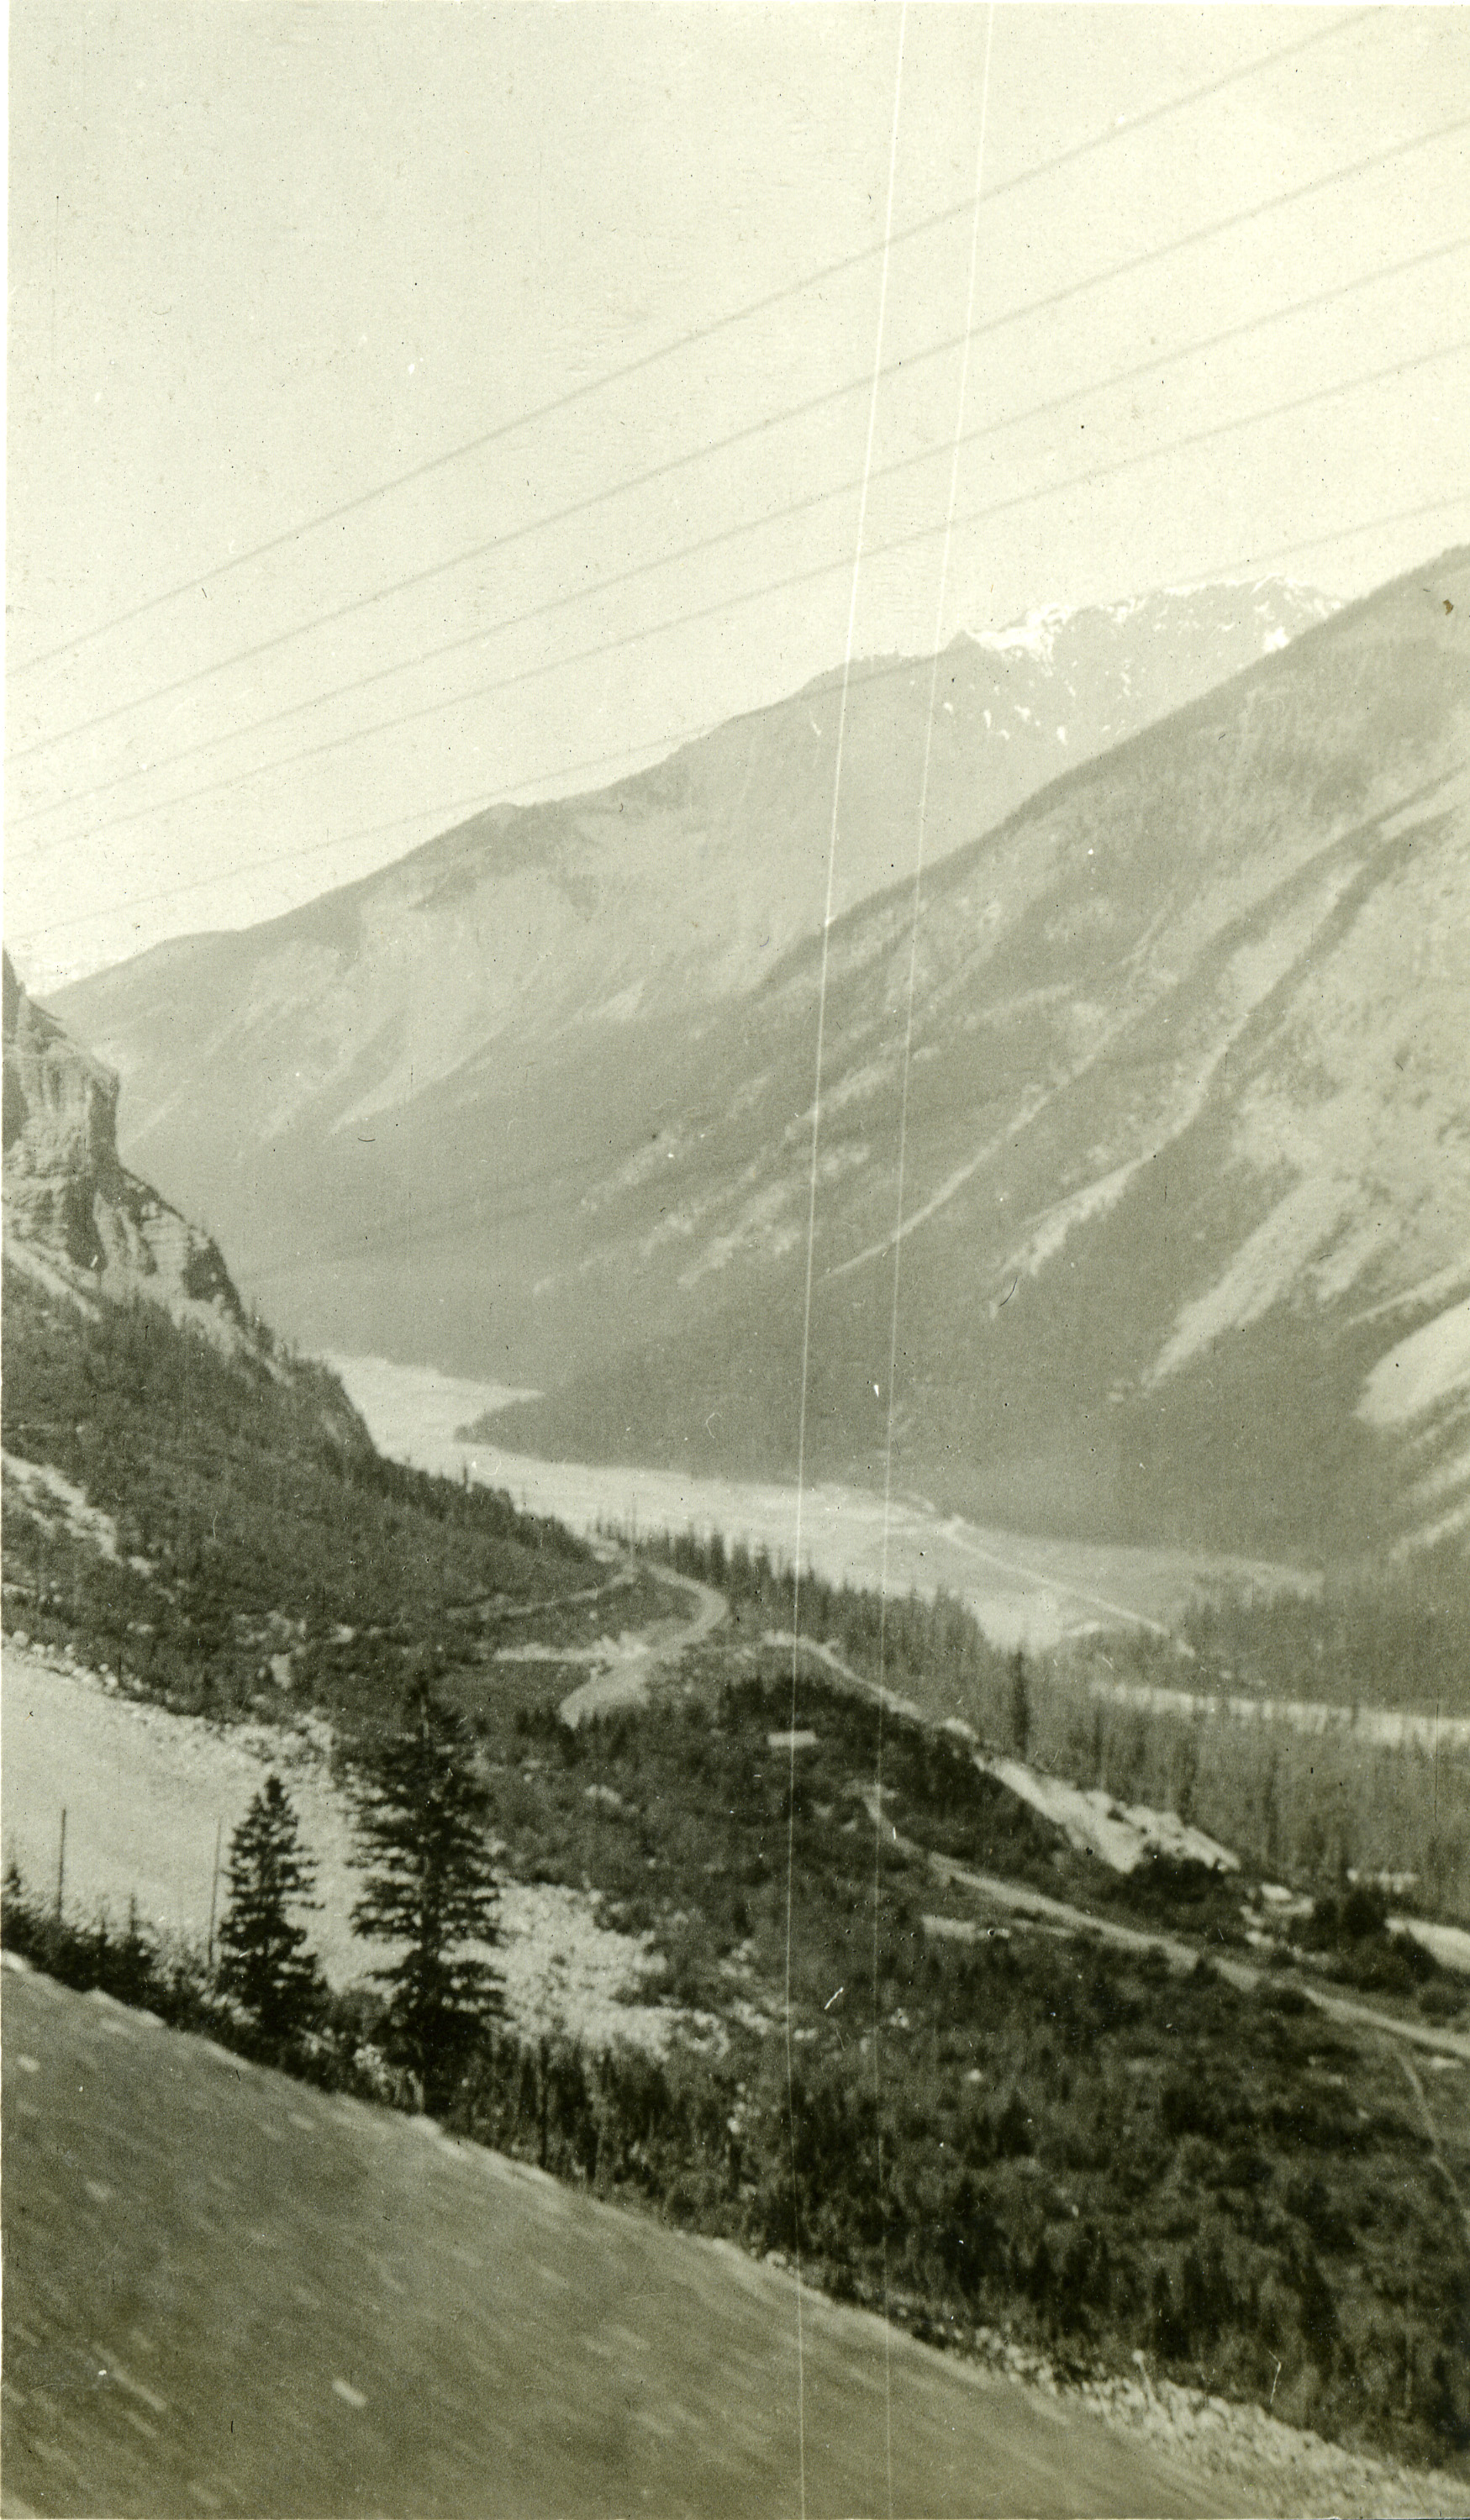 Kicking Horse Valley, c.1915. Douglas's father James Hector surveyed the Rocky Mountains for CPR in the late 1850s.